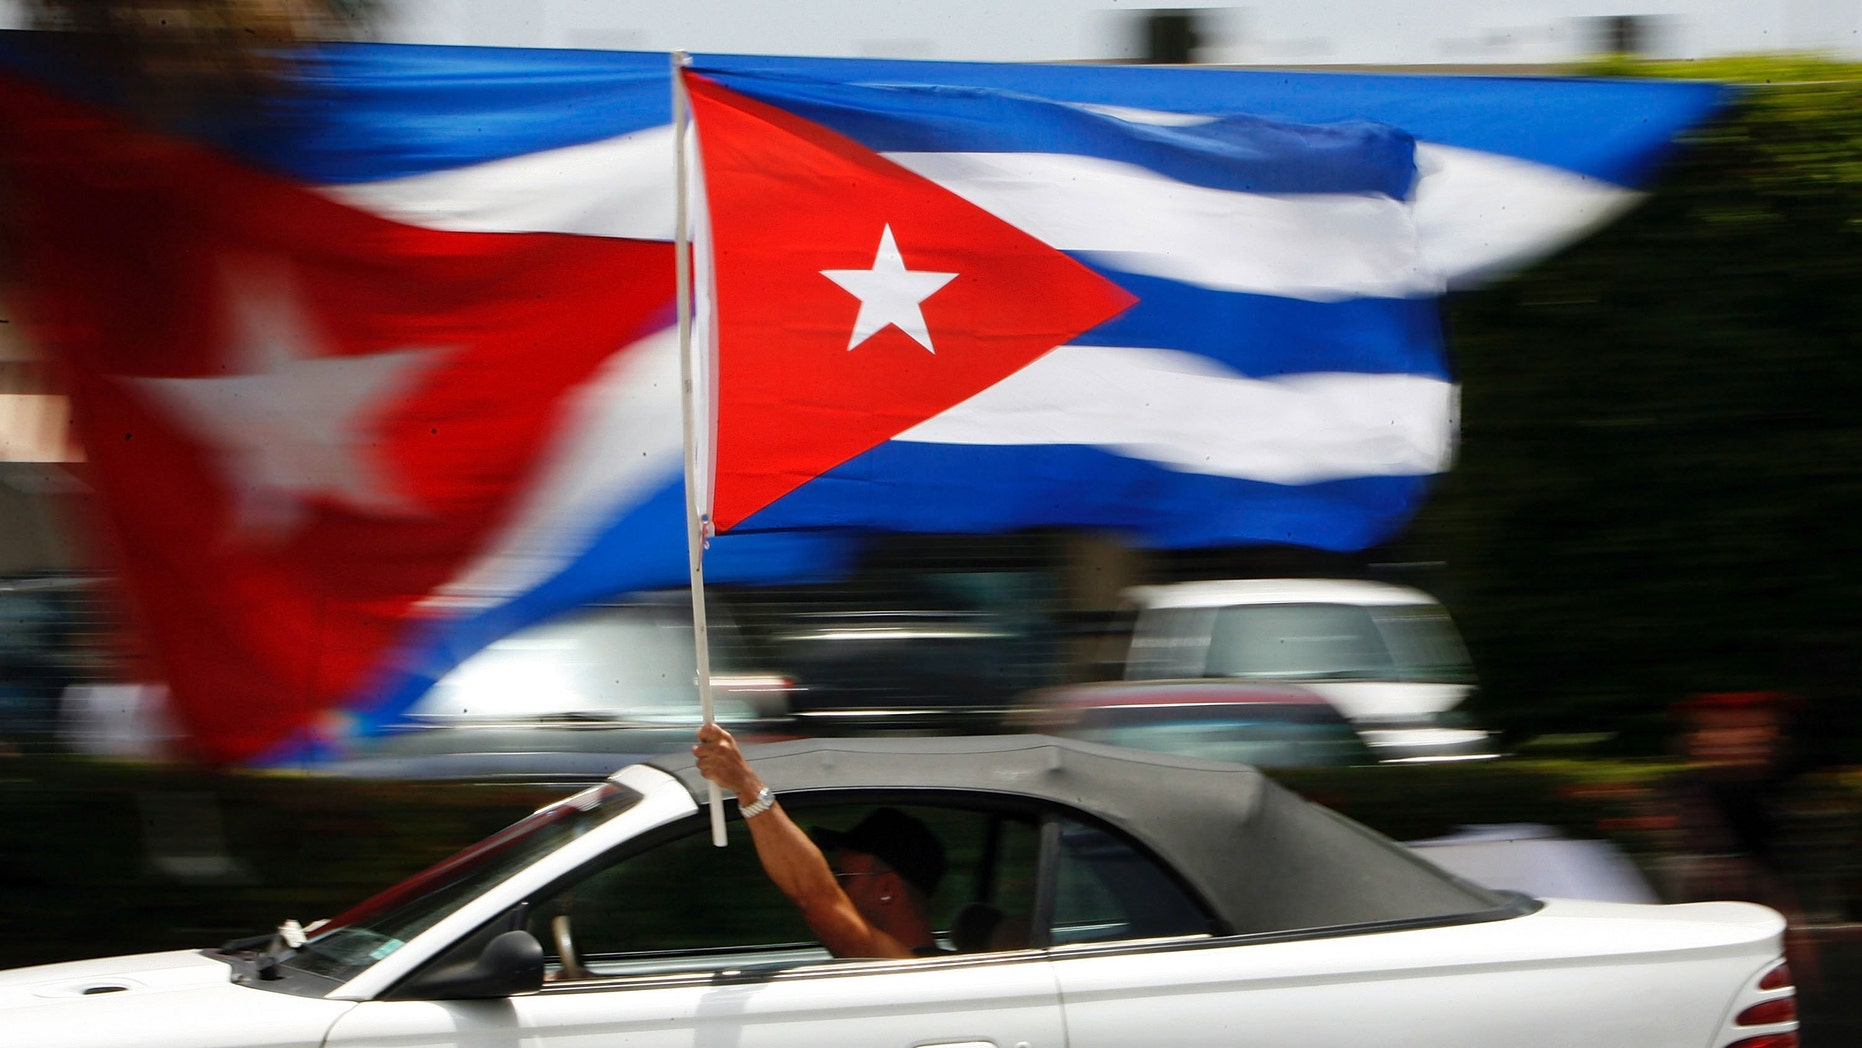 MIAMI - AUGUST 1:  A motorist waves a Cuban flag while cruising down the famous Calle Ocho in the Little Havana neighborhood August 1, 2006 in Miami, Florida. Cuban Americans were celebrating the news that Fidel Castro had turned over power to his younger brother, Raul Castro, while he undergoes medical treatment for intestinal bleeding.  (Photo by Chip Somodevilla/Getty Images)